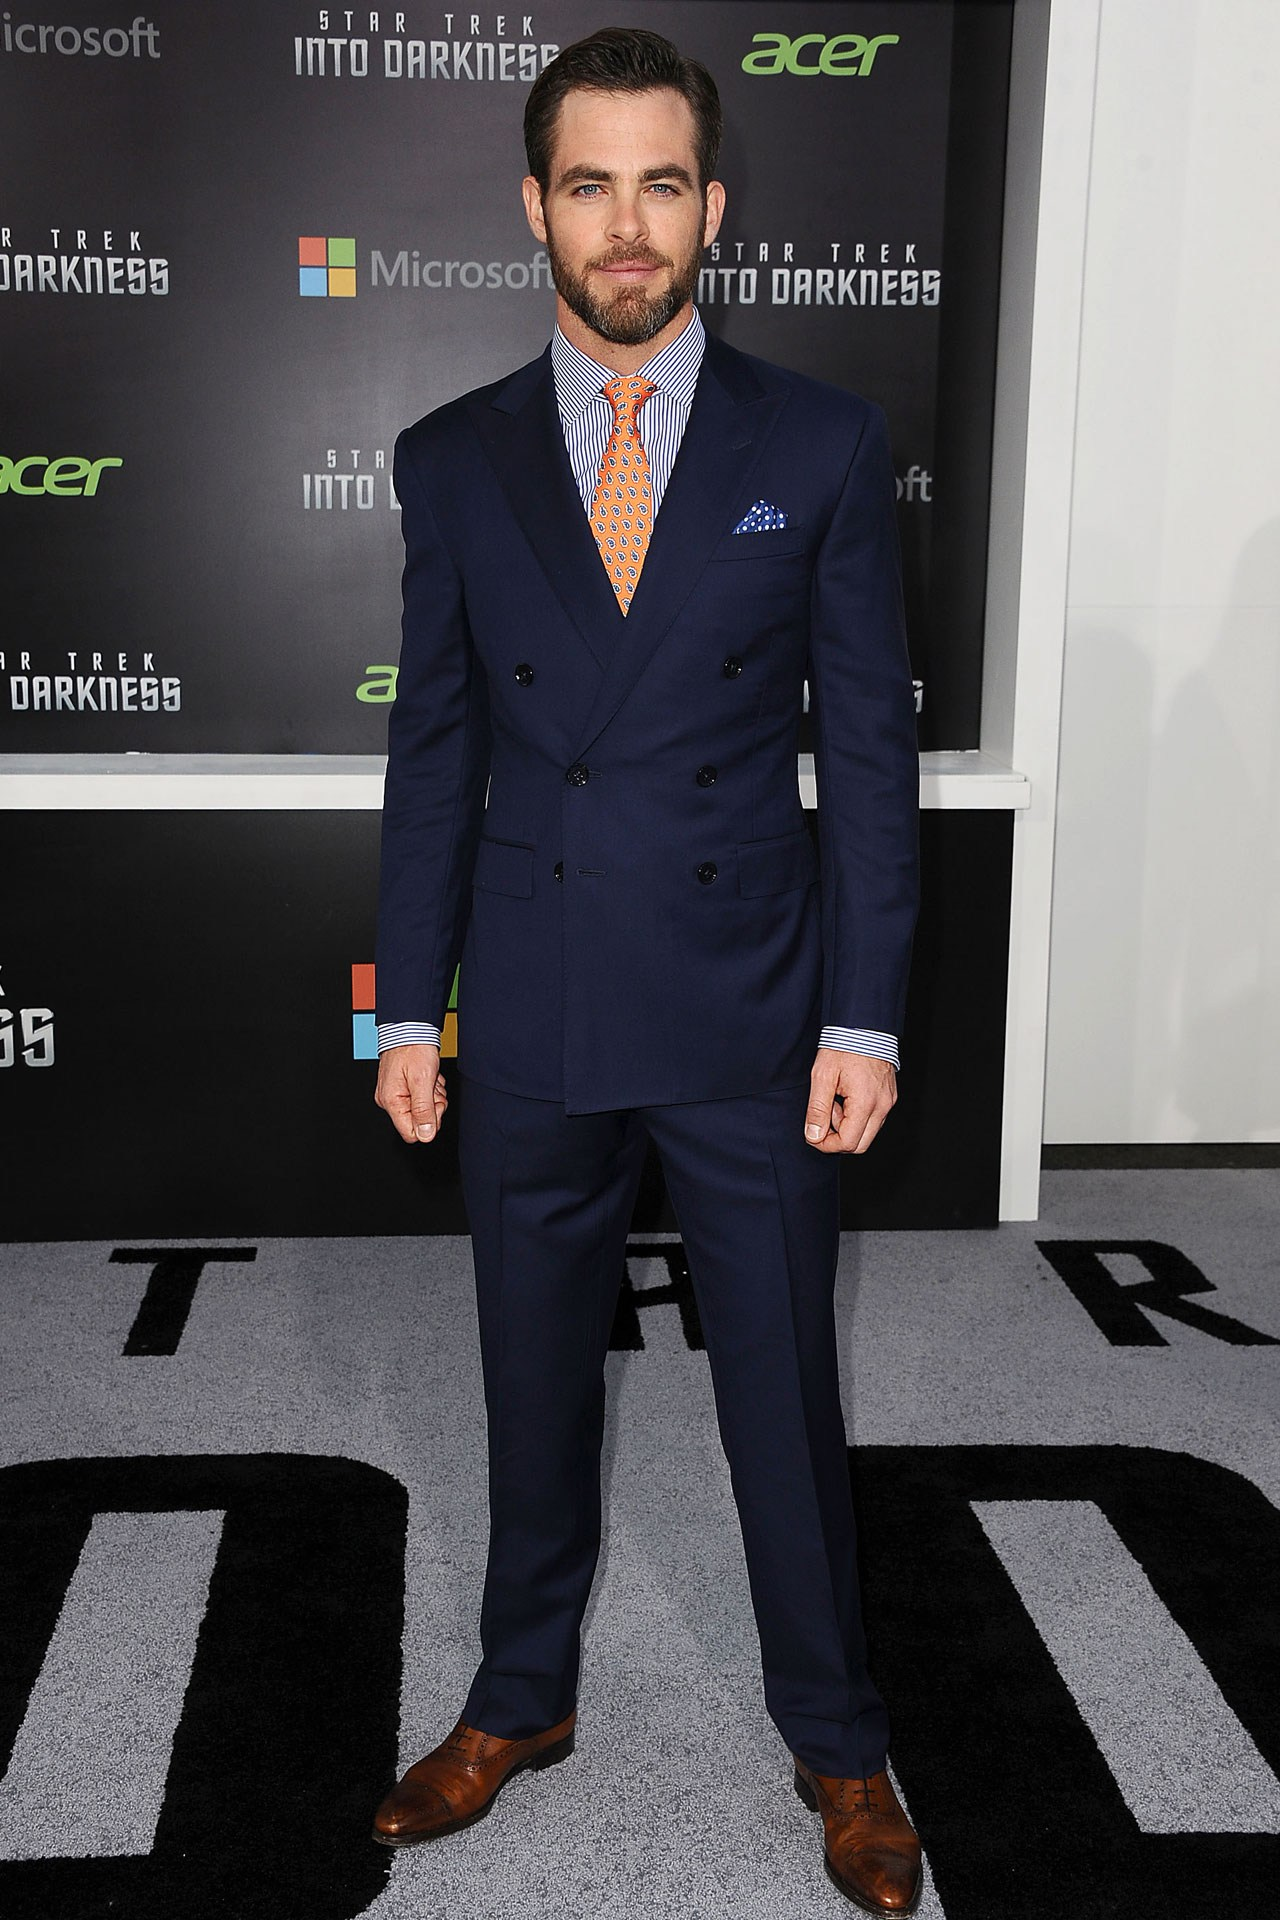 chris-pine-gq-17may13-getty_x_1.jpg